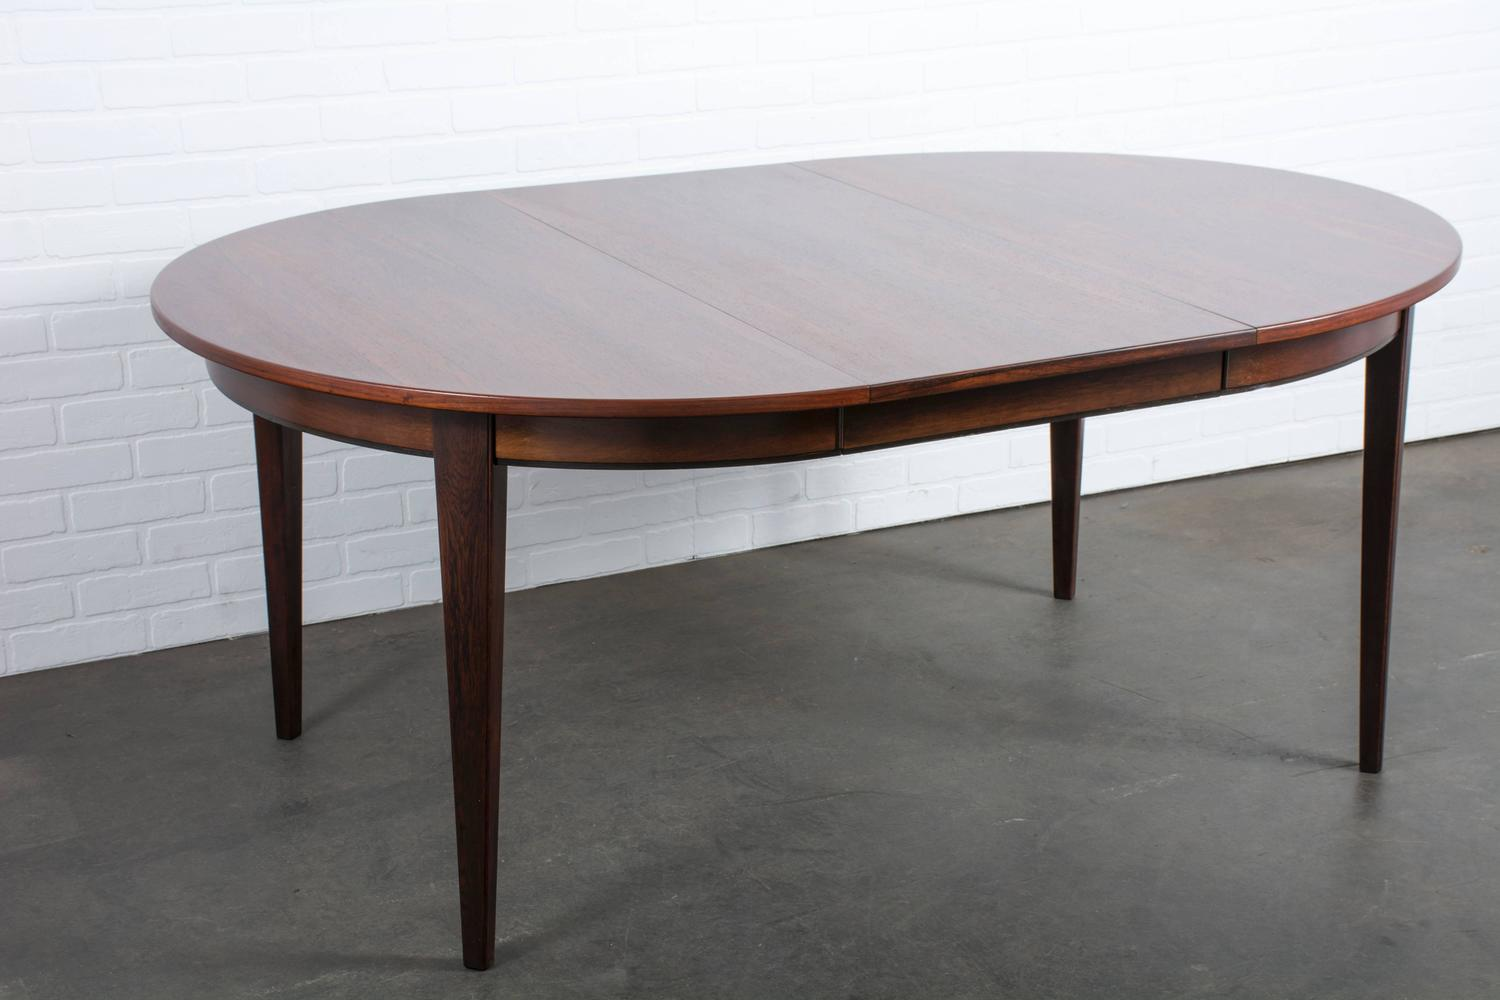 Modern Dining Table With Leaf Large Modern Draw Leaf